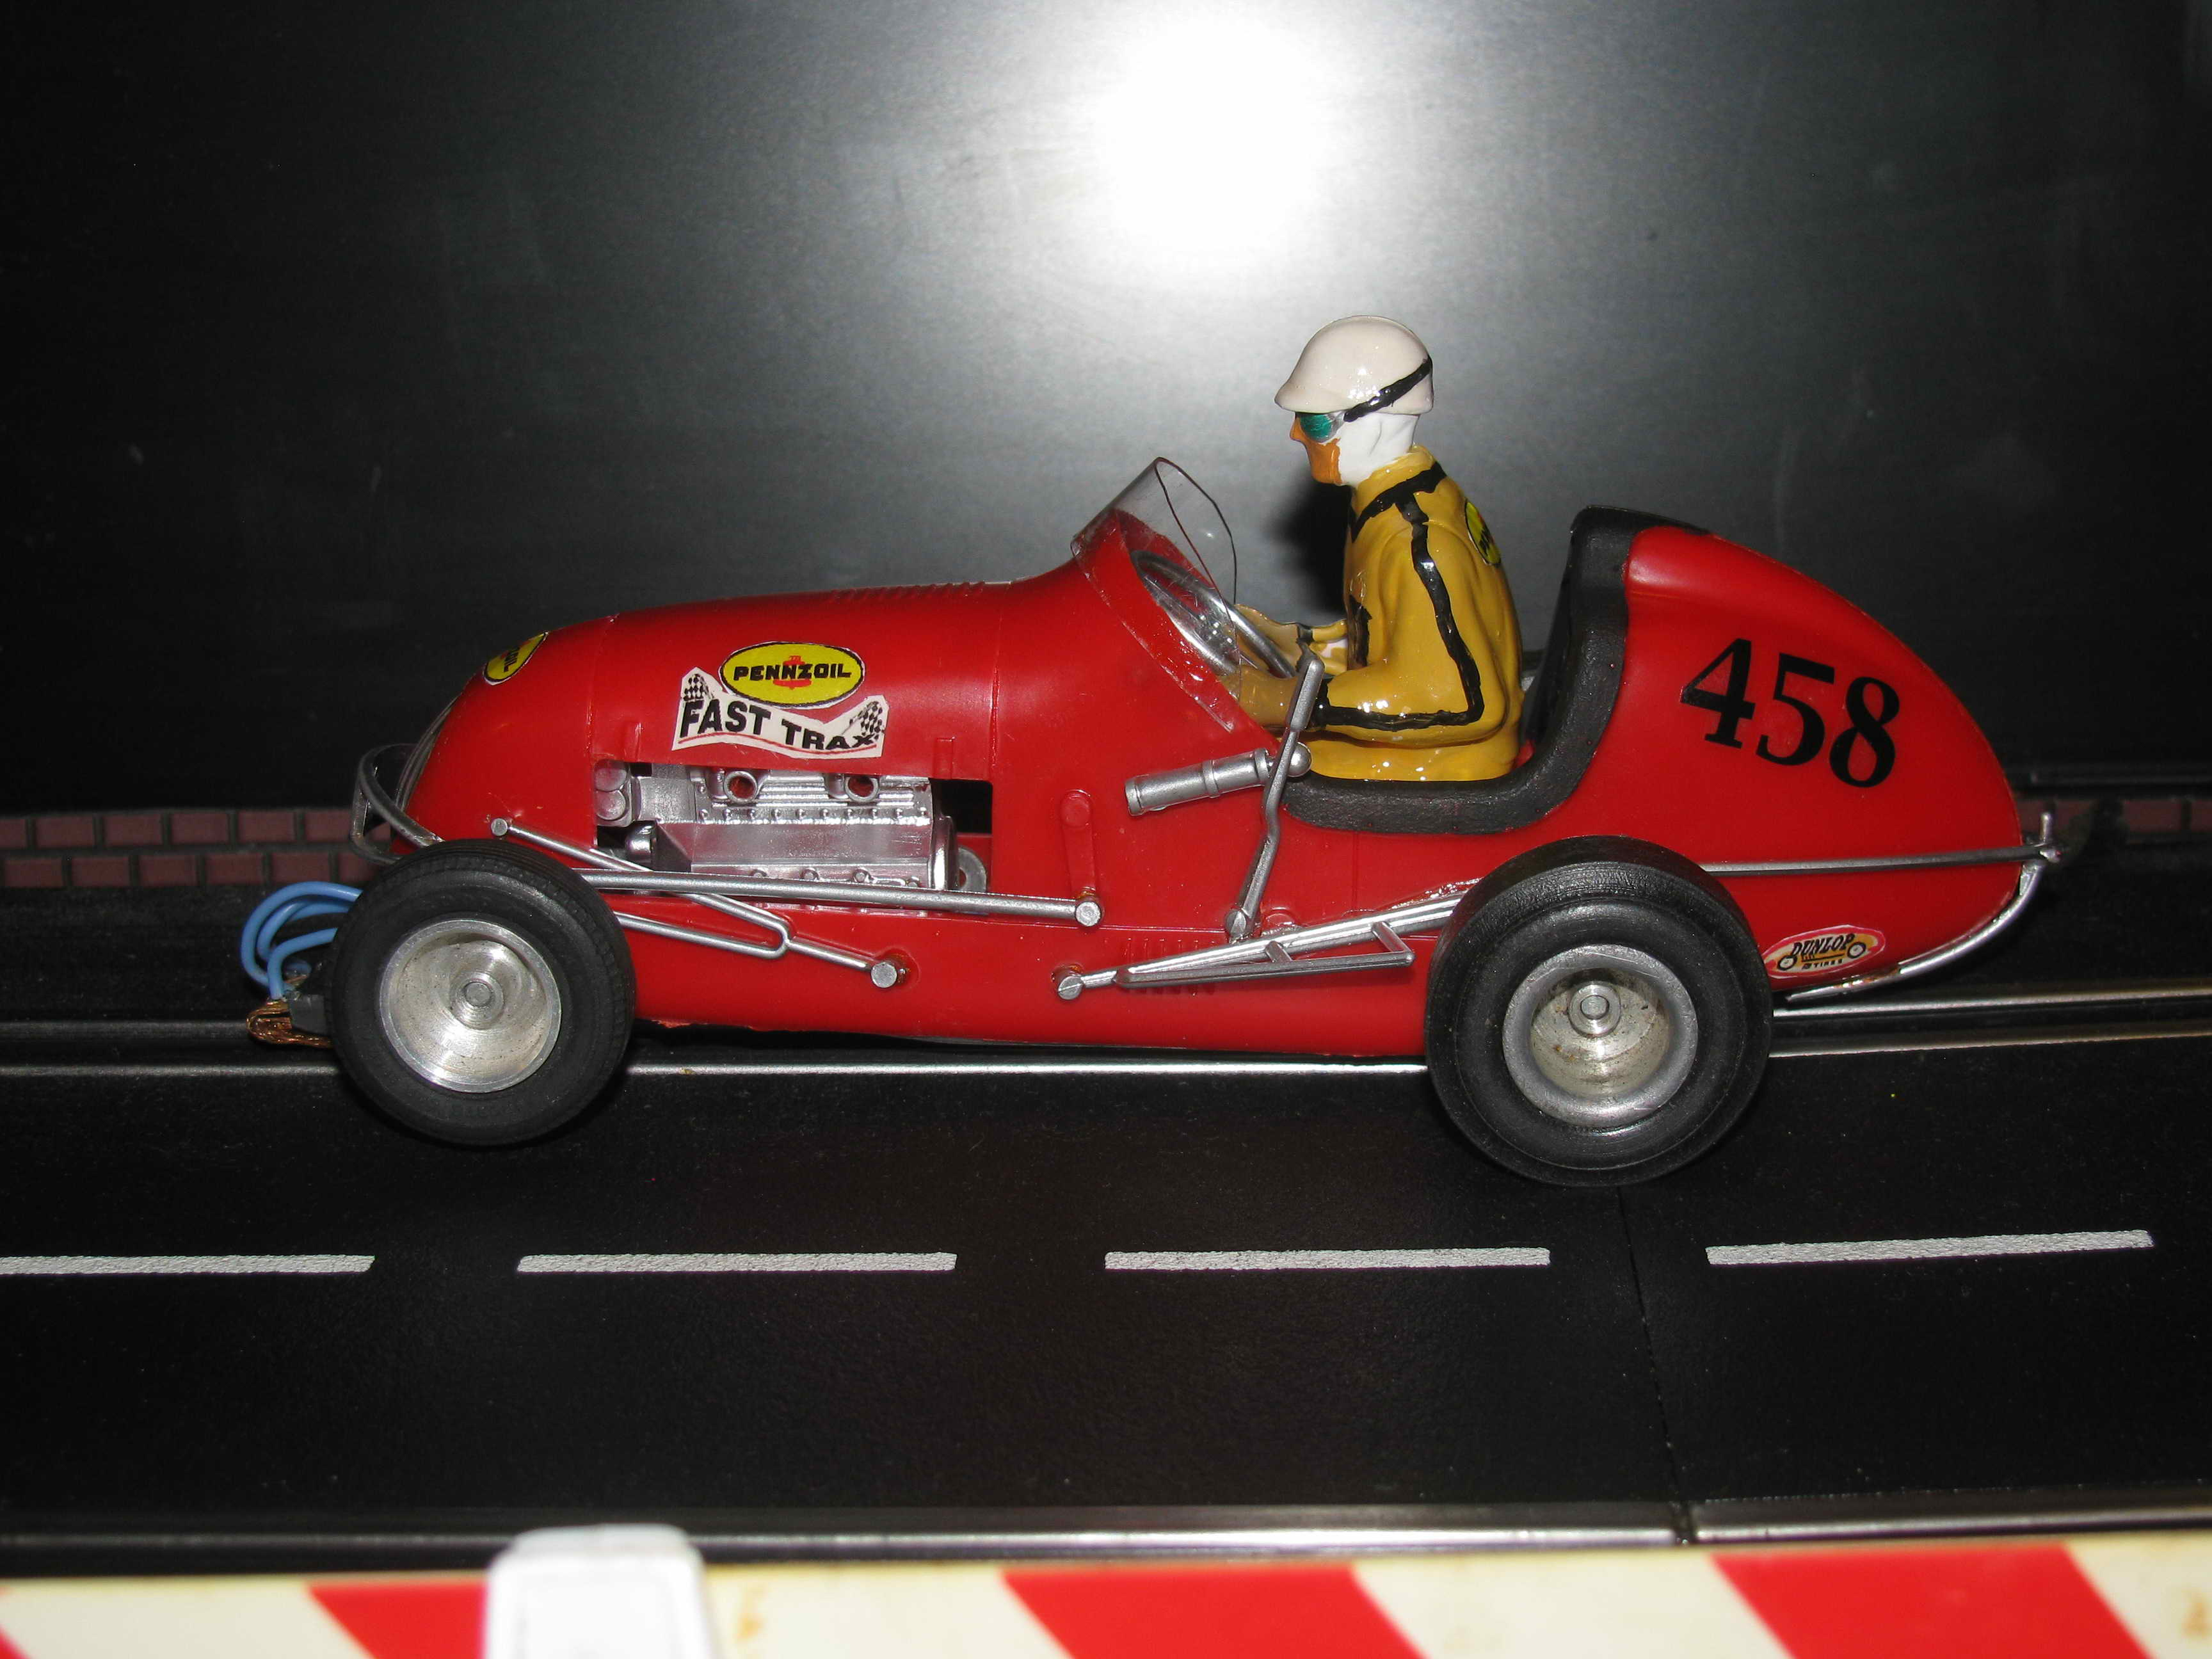 *SOLD* Monogram Midget Racer Red Runner 458 Slot Car